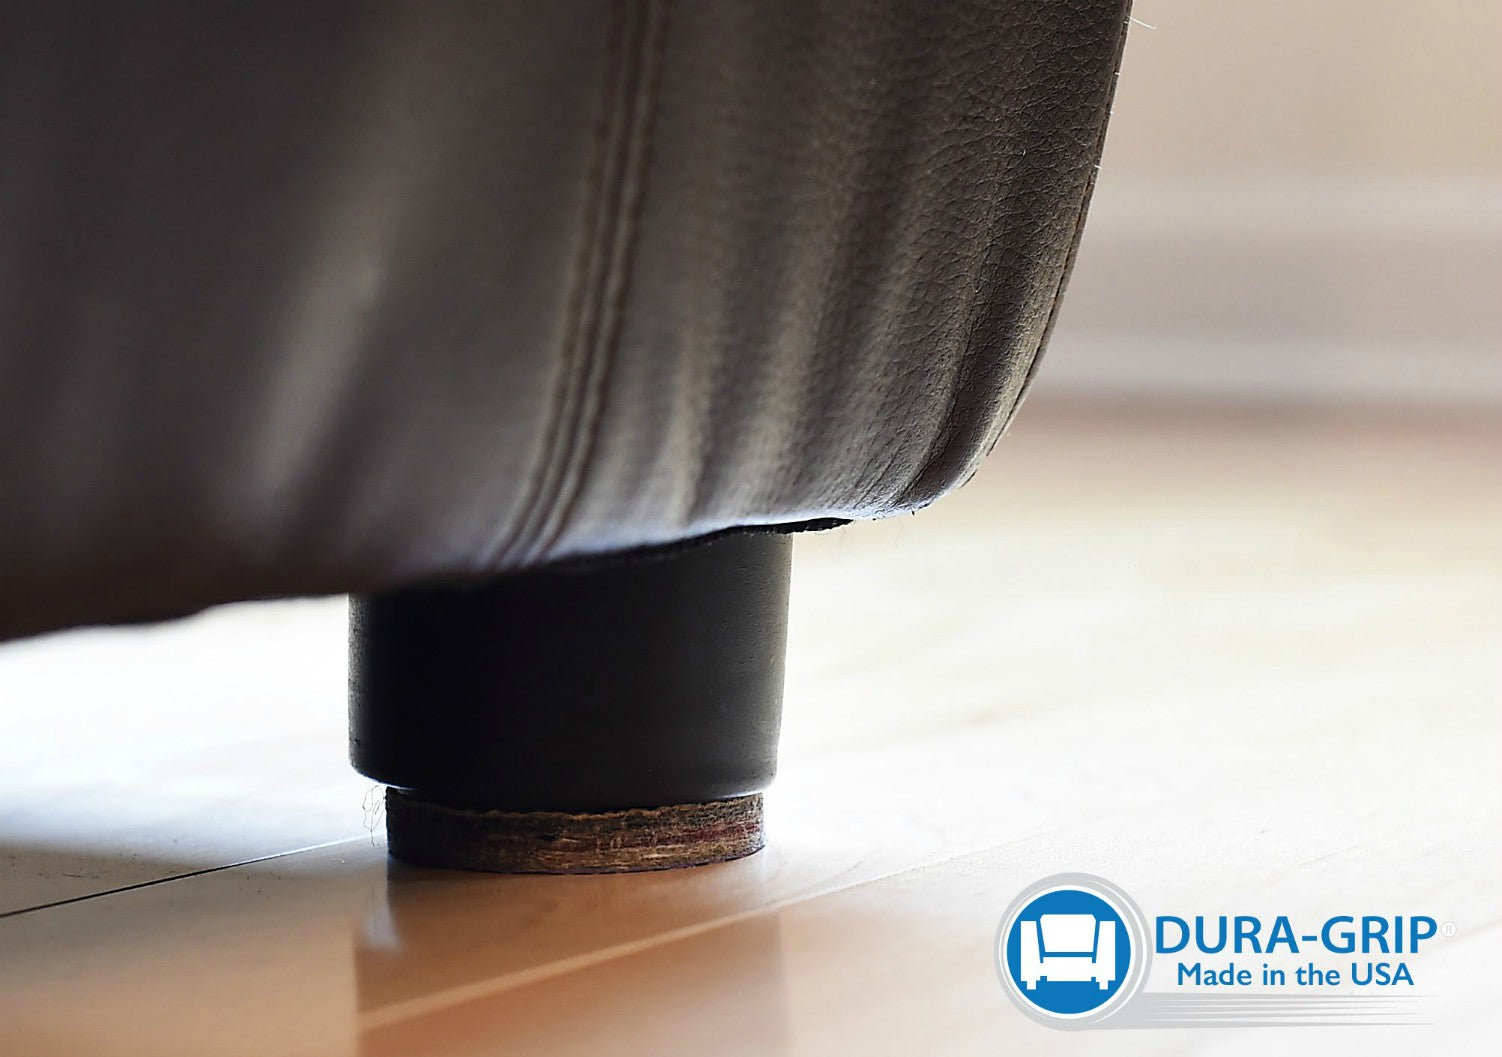 DURA-GRIP® Non Slip Rubber Furniture Floor Pads